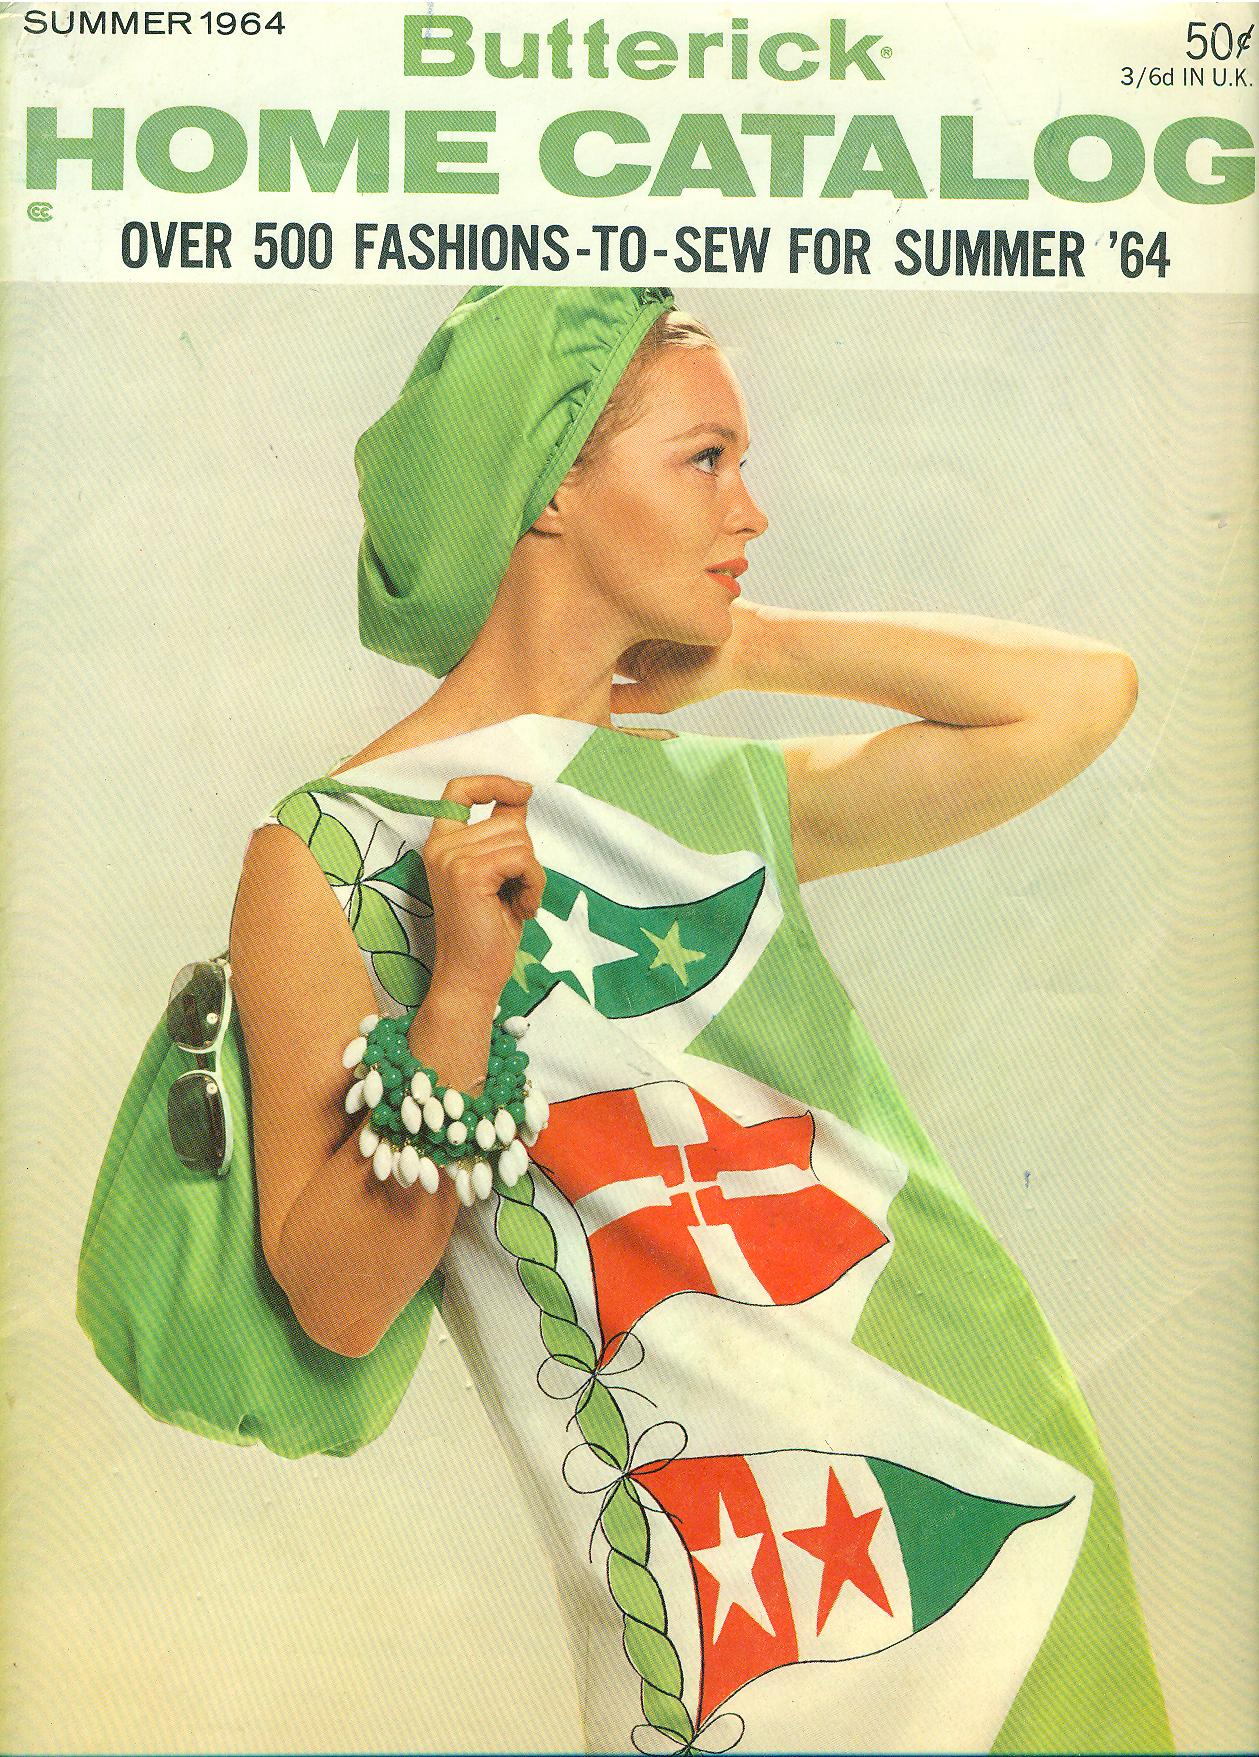 Butterick Home Catalog Summer 1964